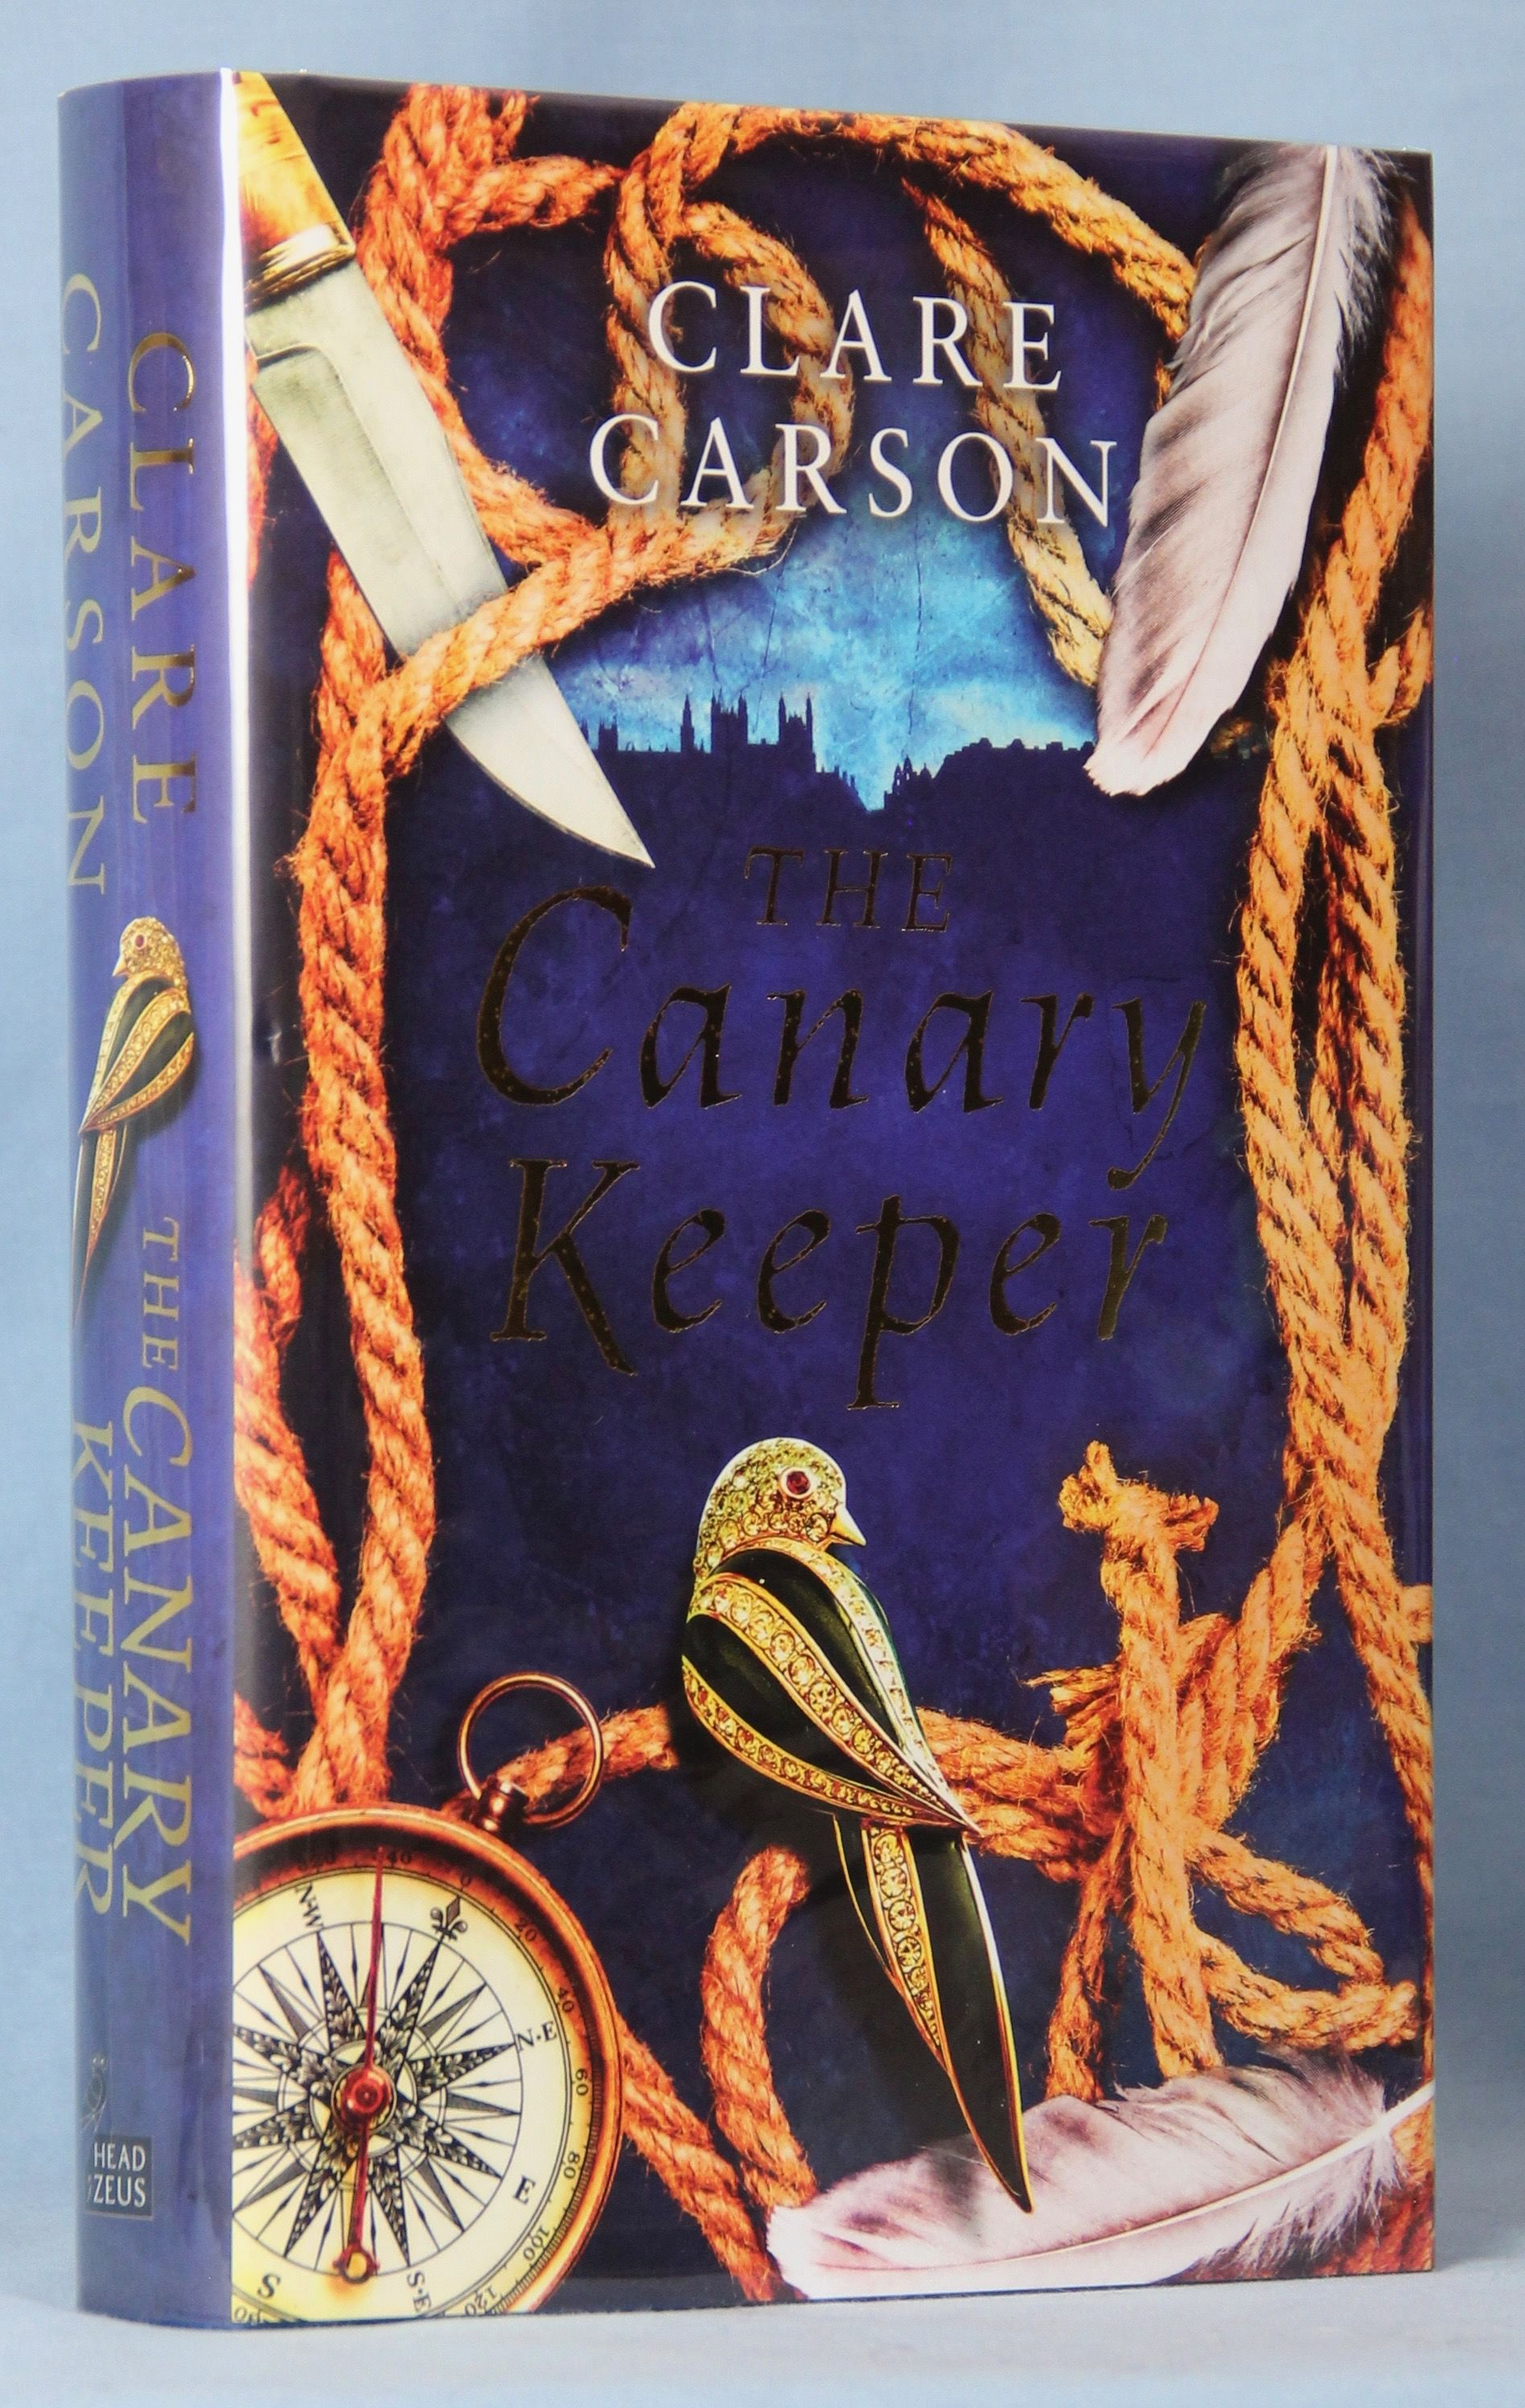 Image for The Canary Keeper (Signed, Dated, Lined)